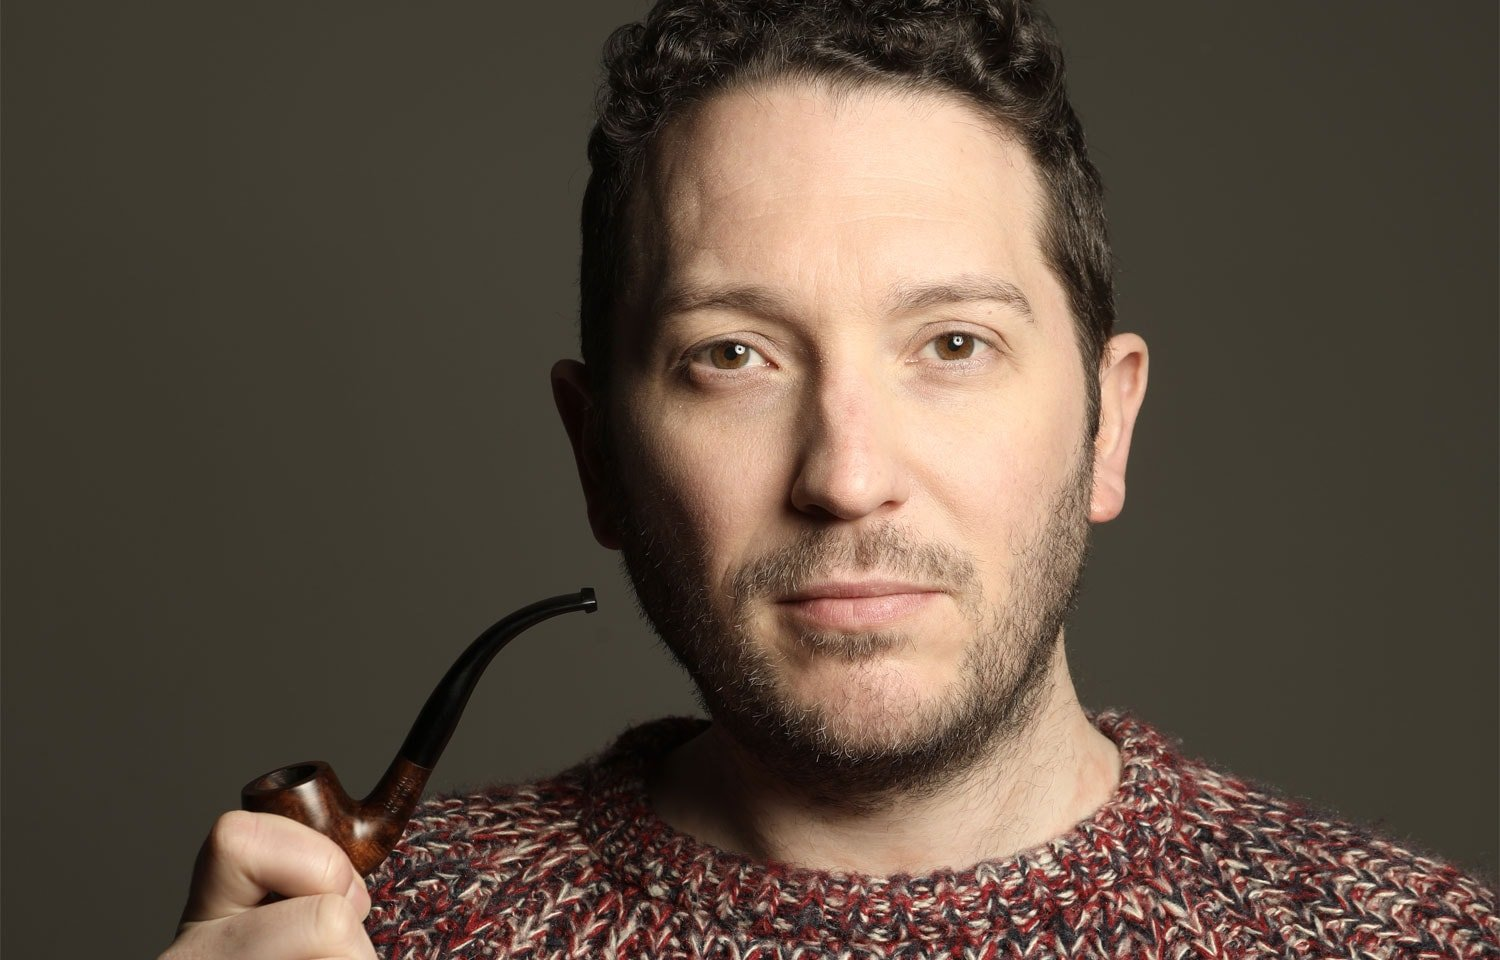 JON RICHARDSON ANNOUNCES AUTUMN 2020 TOUR THE KNITWIT